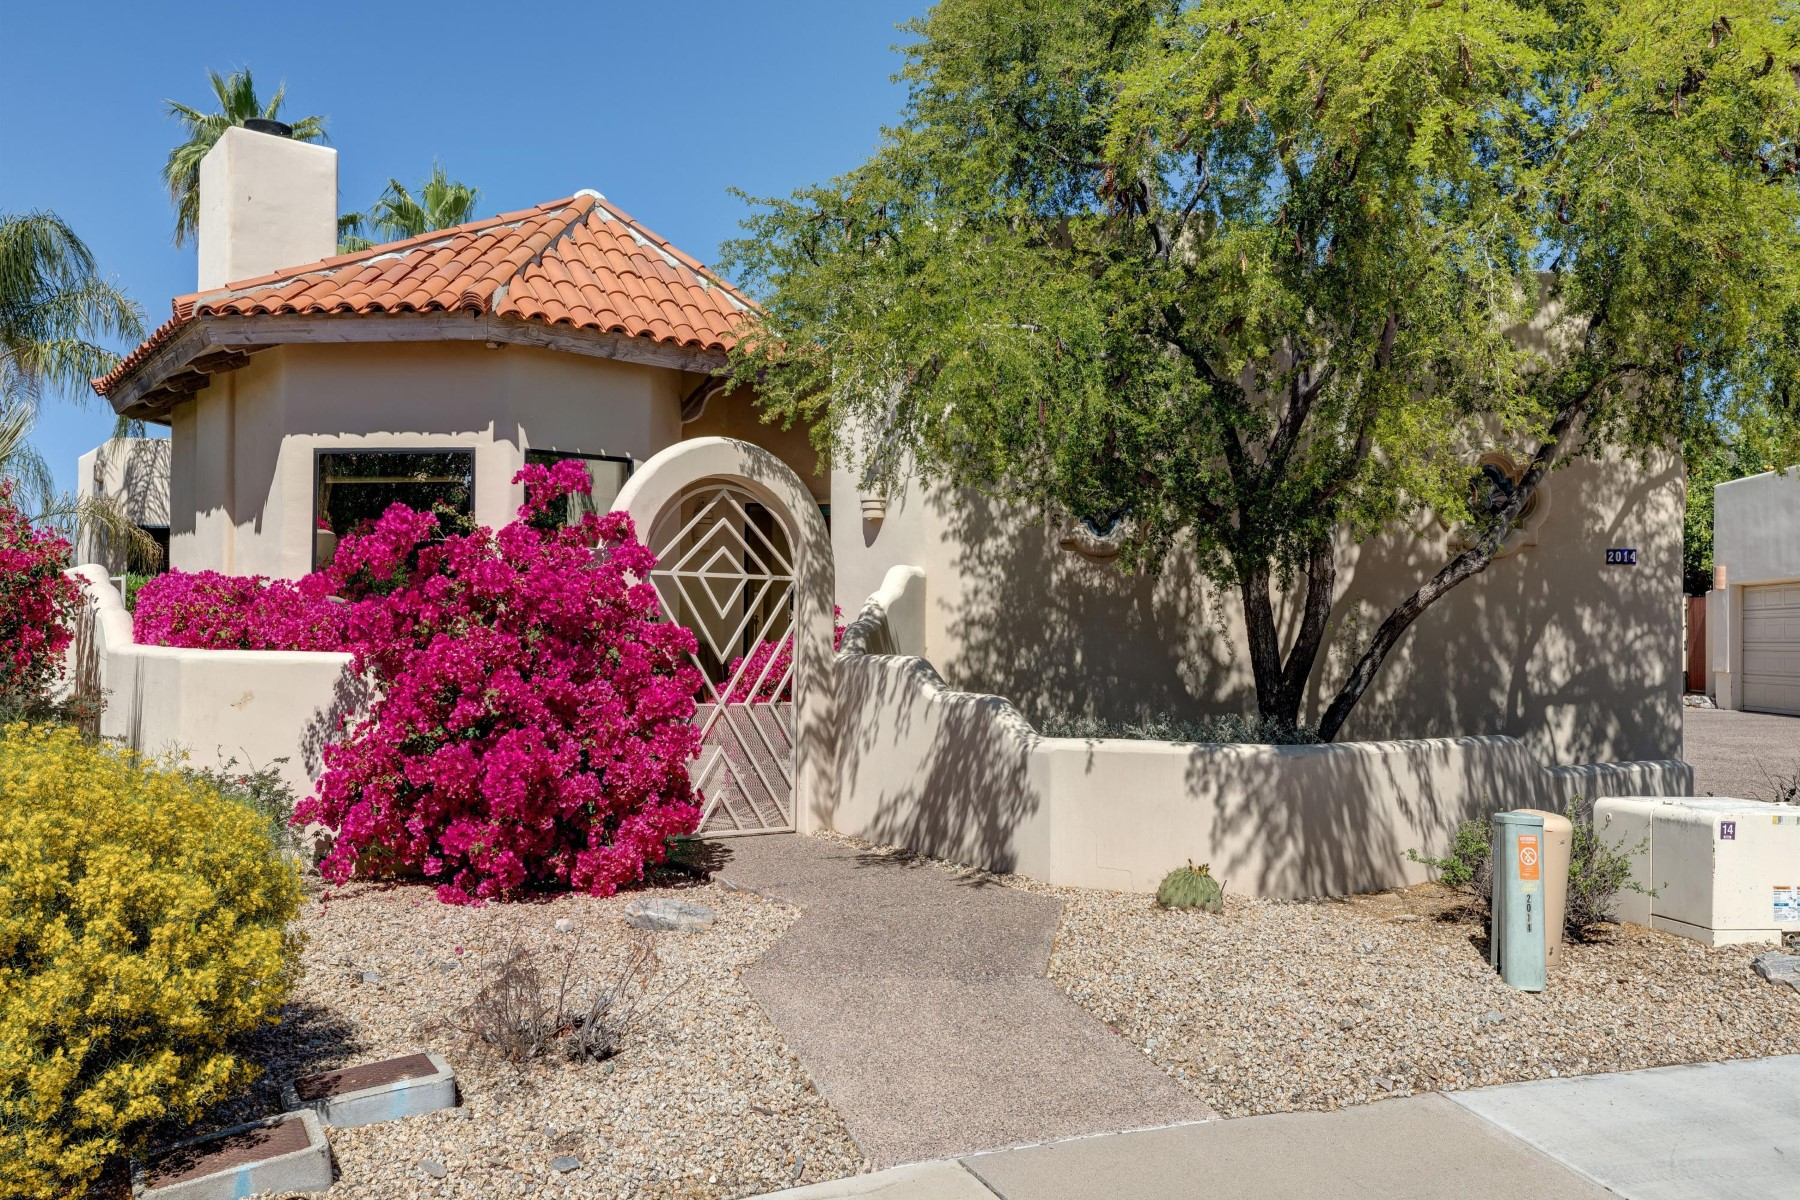 一戸建て のために 売買 アット Beautifully designed home located in gated Villas Encantadas 2014 E Northview Ave Phoenix, アリゾナ, 85020 アメリカ合衆国